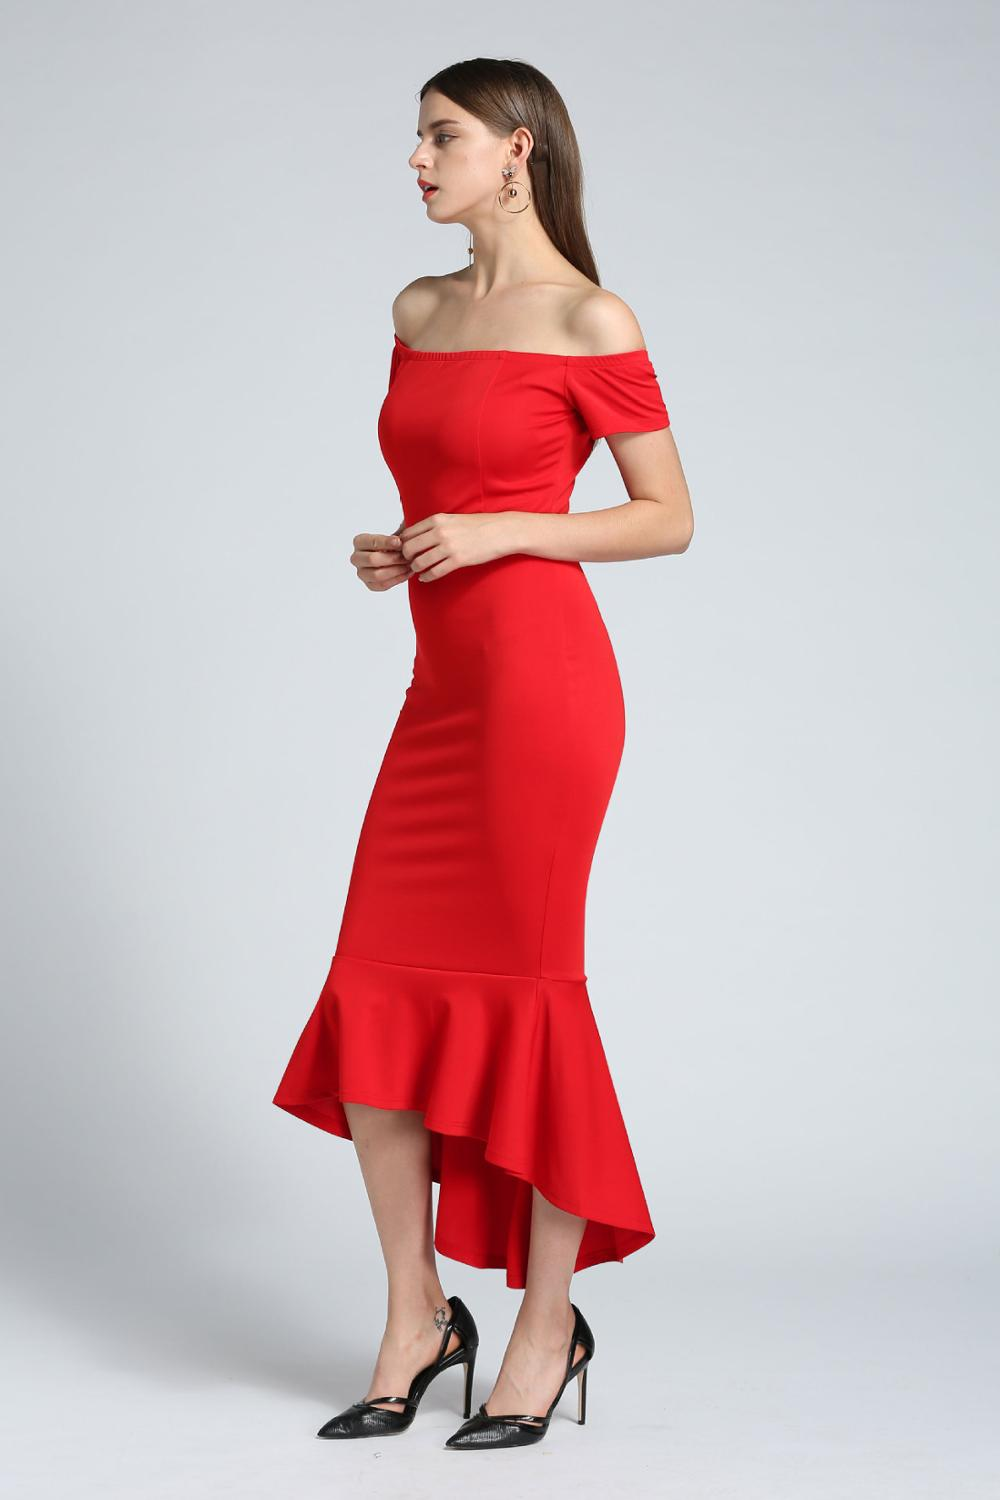 In Stock Cheap Red Plus Size Mermaid Prom Dresses Off-Shoulder HI-Lo  Ankle-Length Long Evening Prom Party Gowns